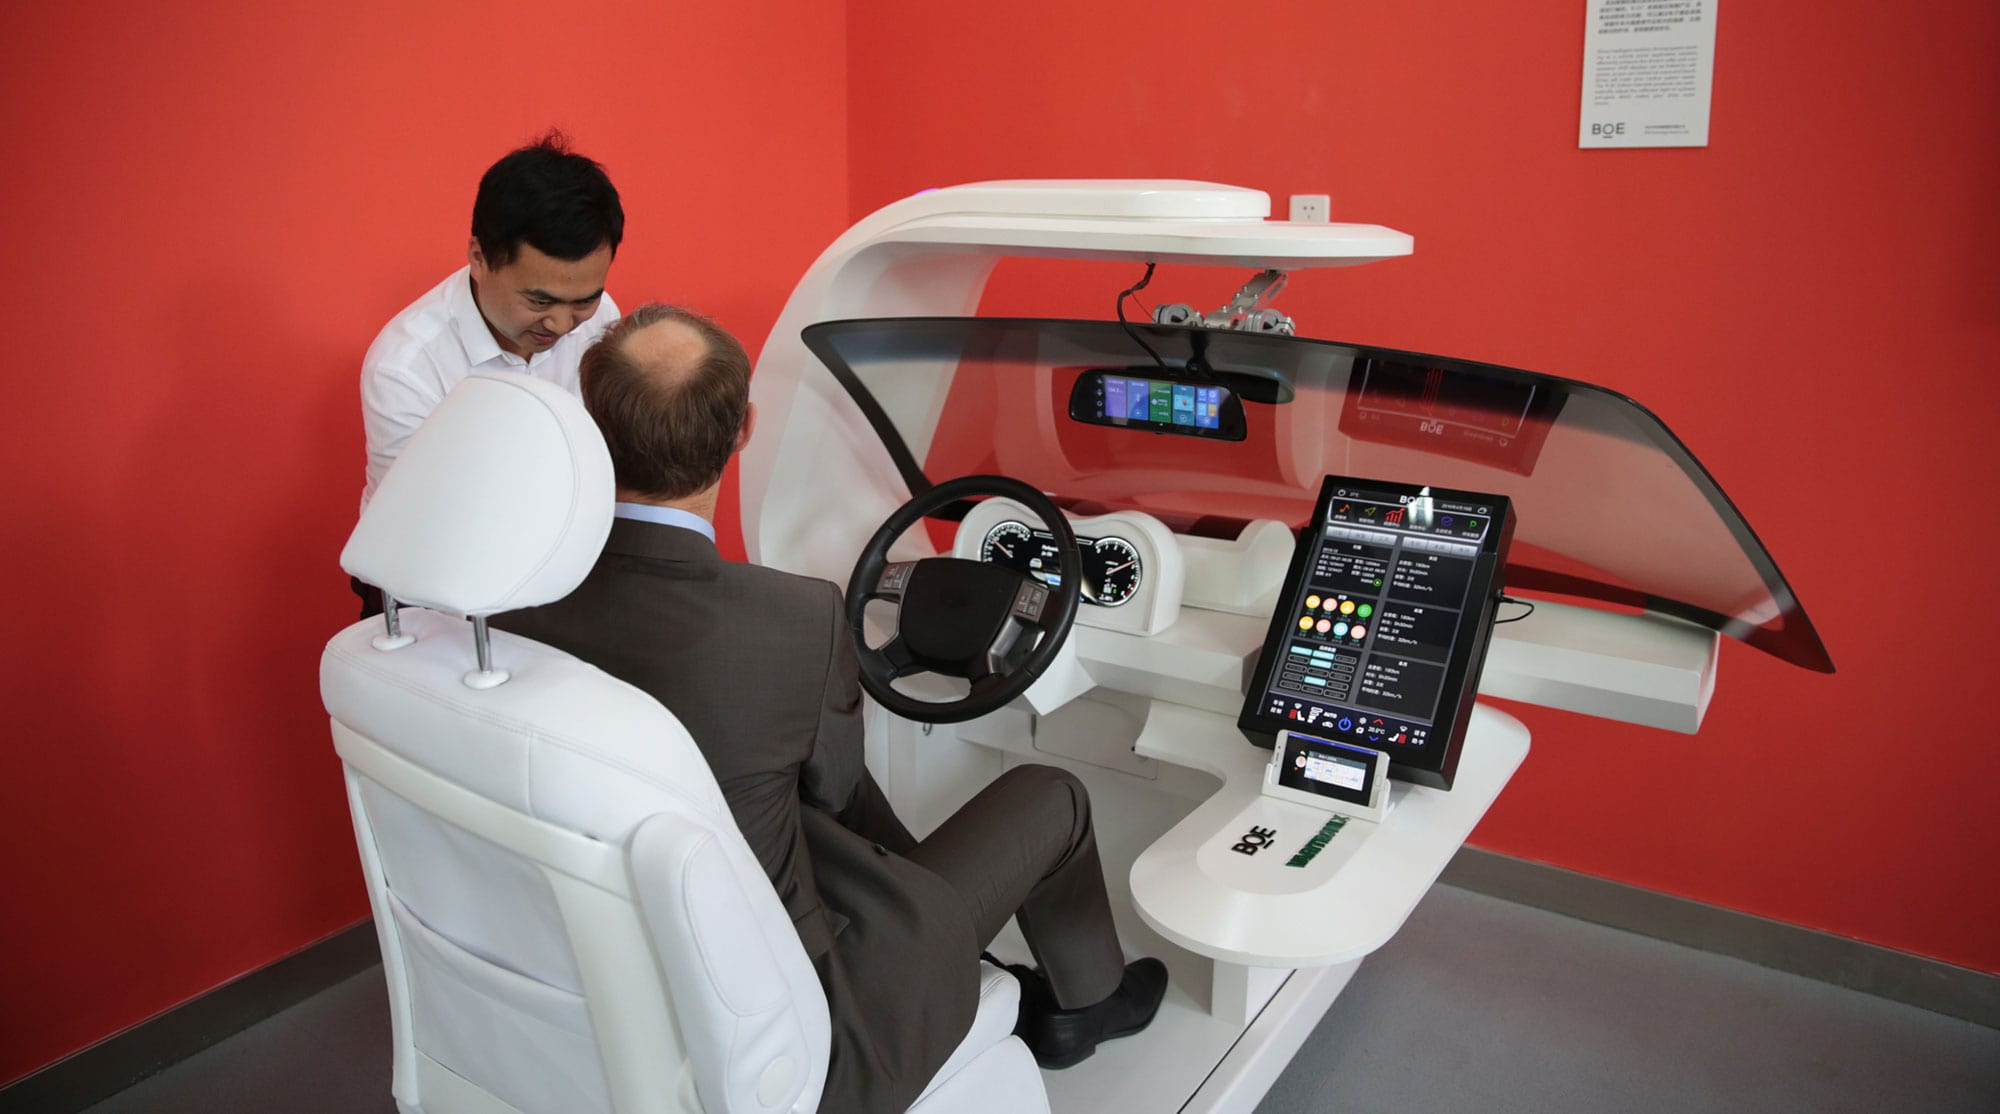 In-car interface design by BOE at AI research exhibition